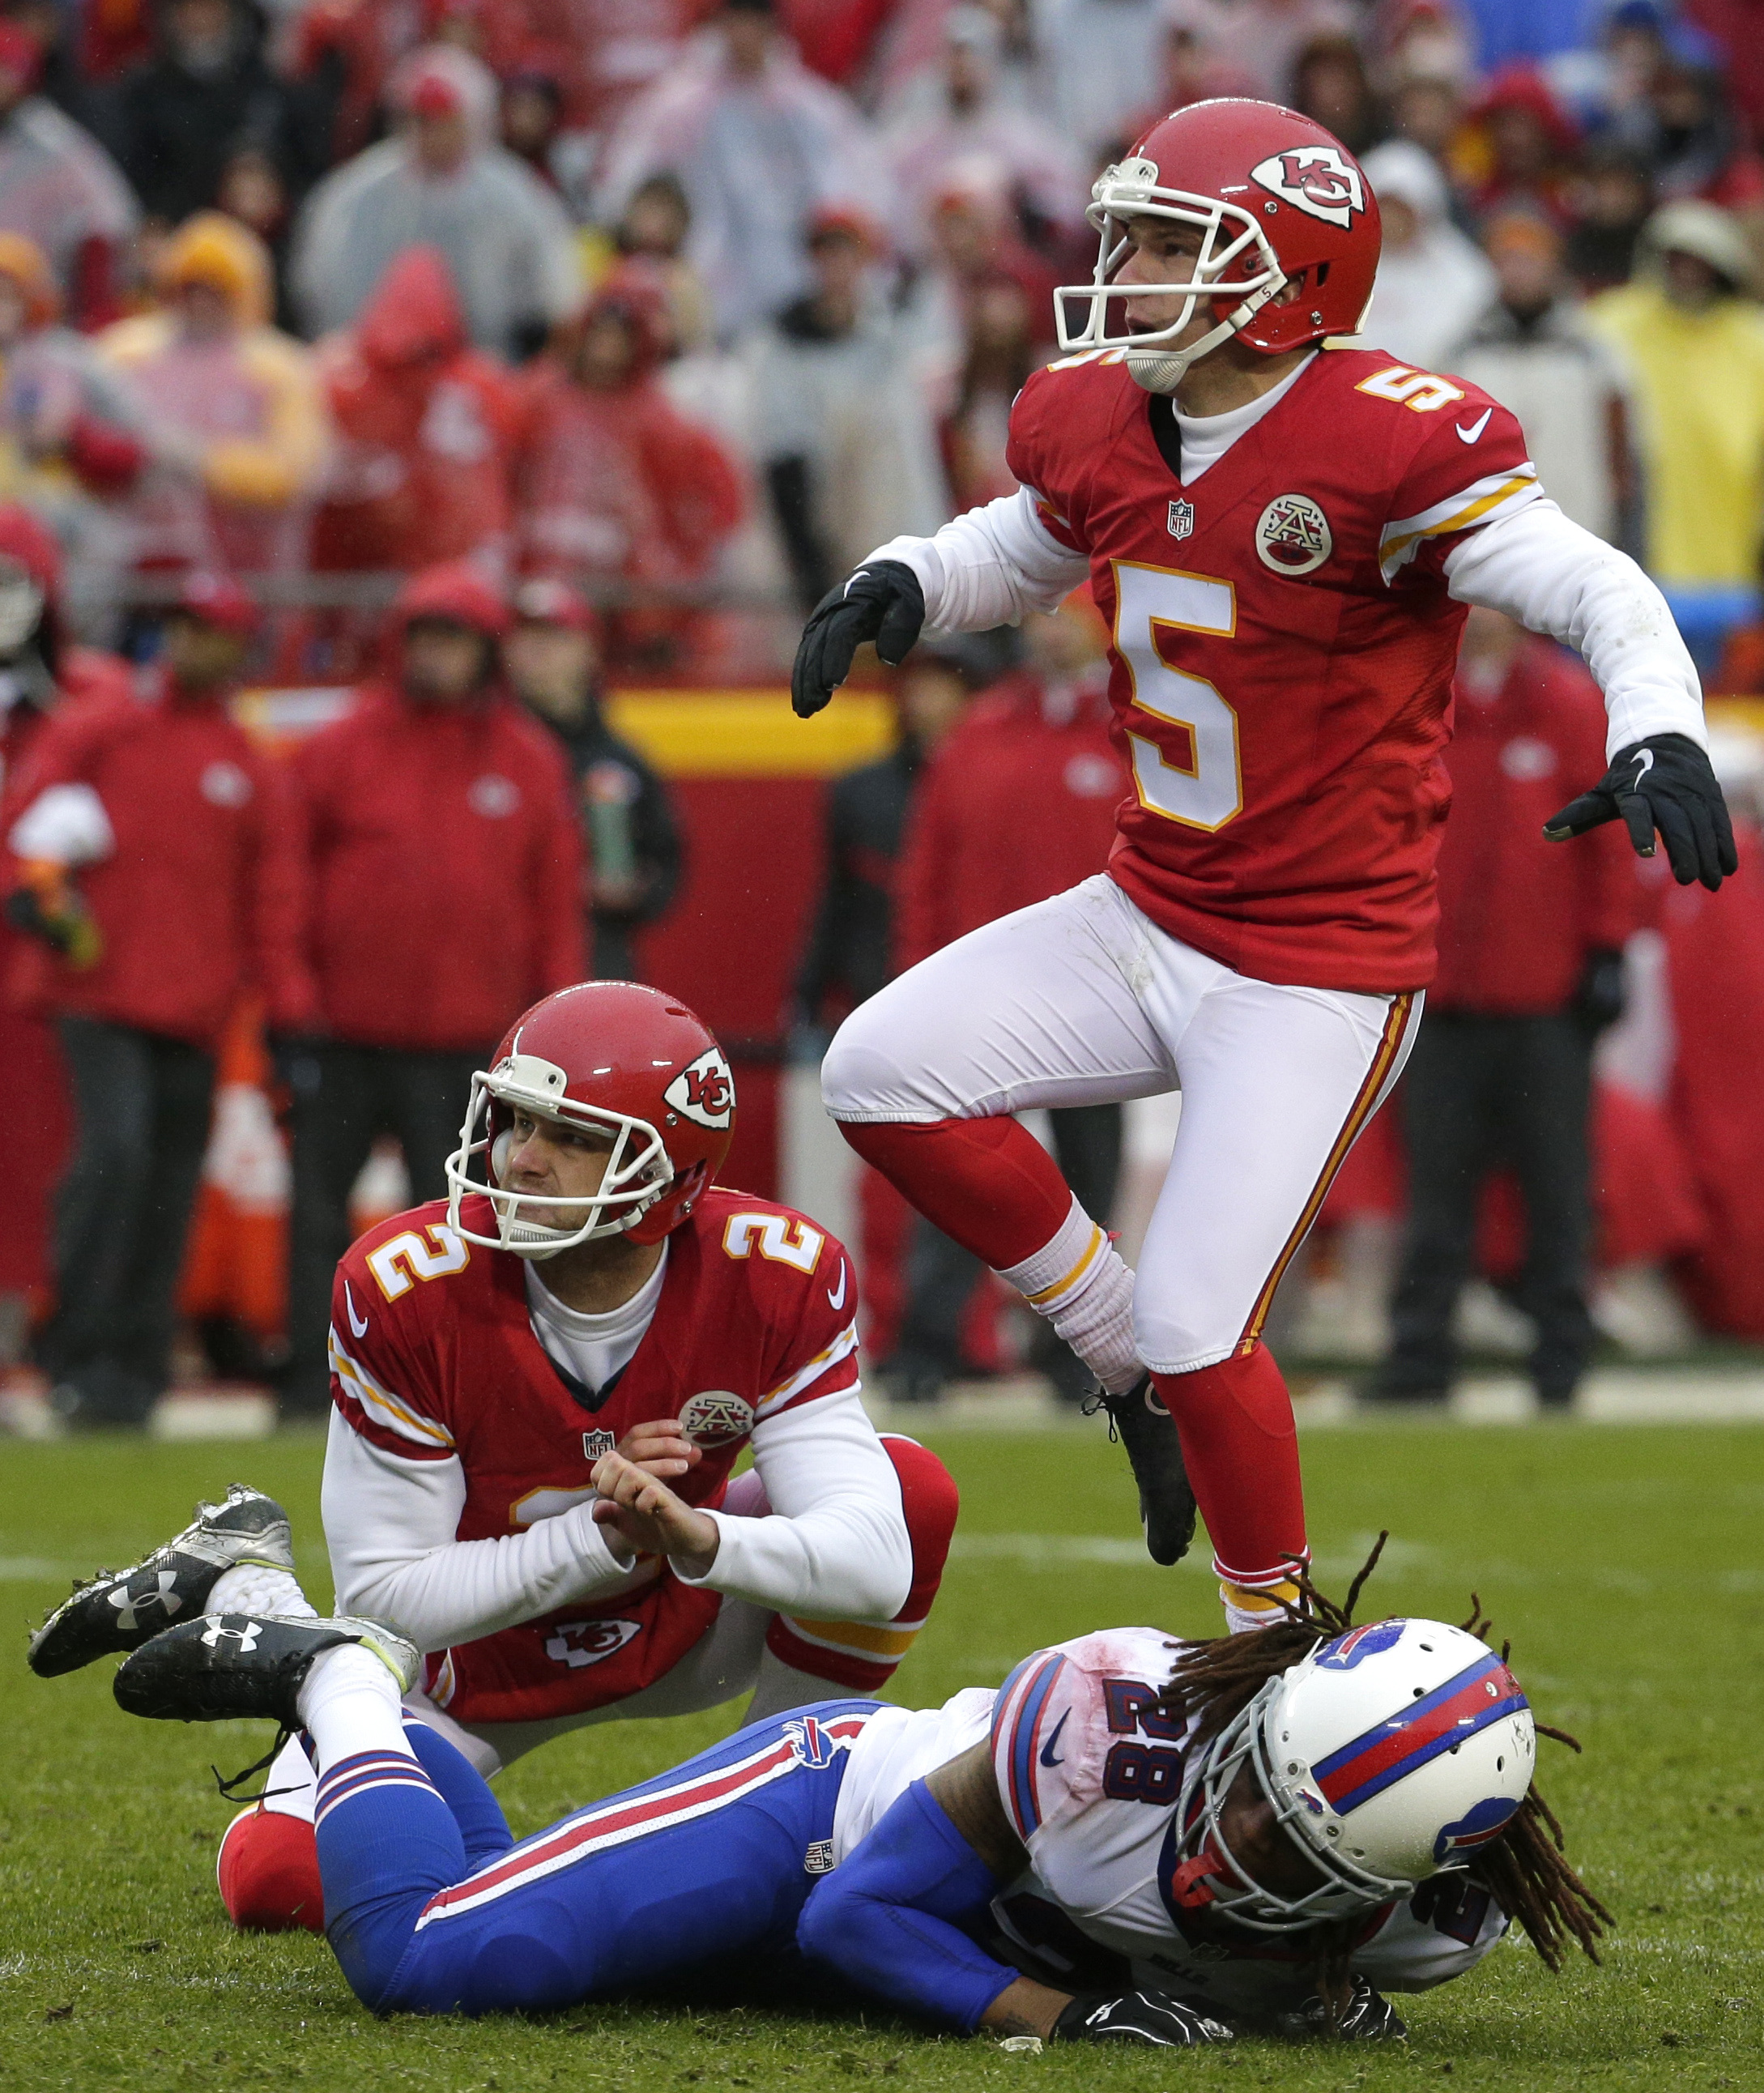 Kansas City Chiefs kicker Cairo Santos (5) follows his field goal ball with holder Dustin Colquitt (2) and Buffalo Bills cornerback Ronald Darby (28) during the second half of an NFL football game in Kansas City, Mo., Sunday, Nov. 29, 2015. (AP Photo/Char